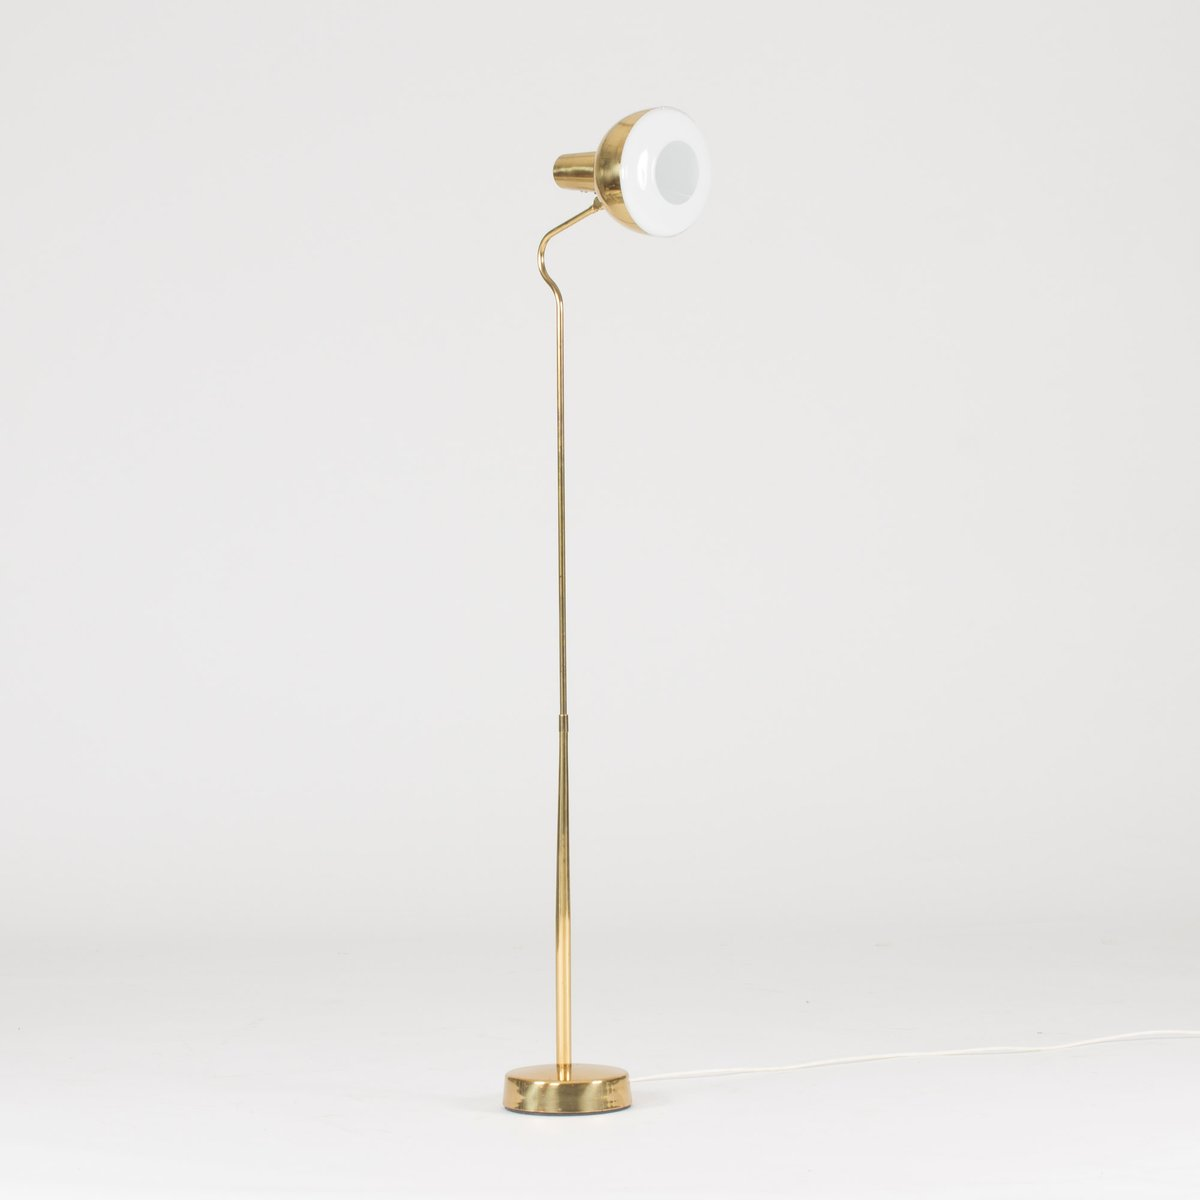 Vintage brass floor lamp from asea 1950s for sale at pamono for 1950 s brass floor lamp